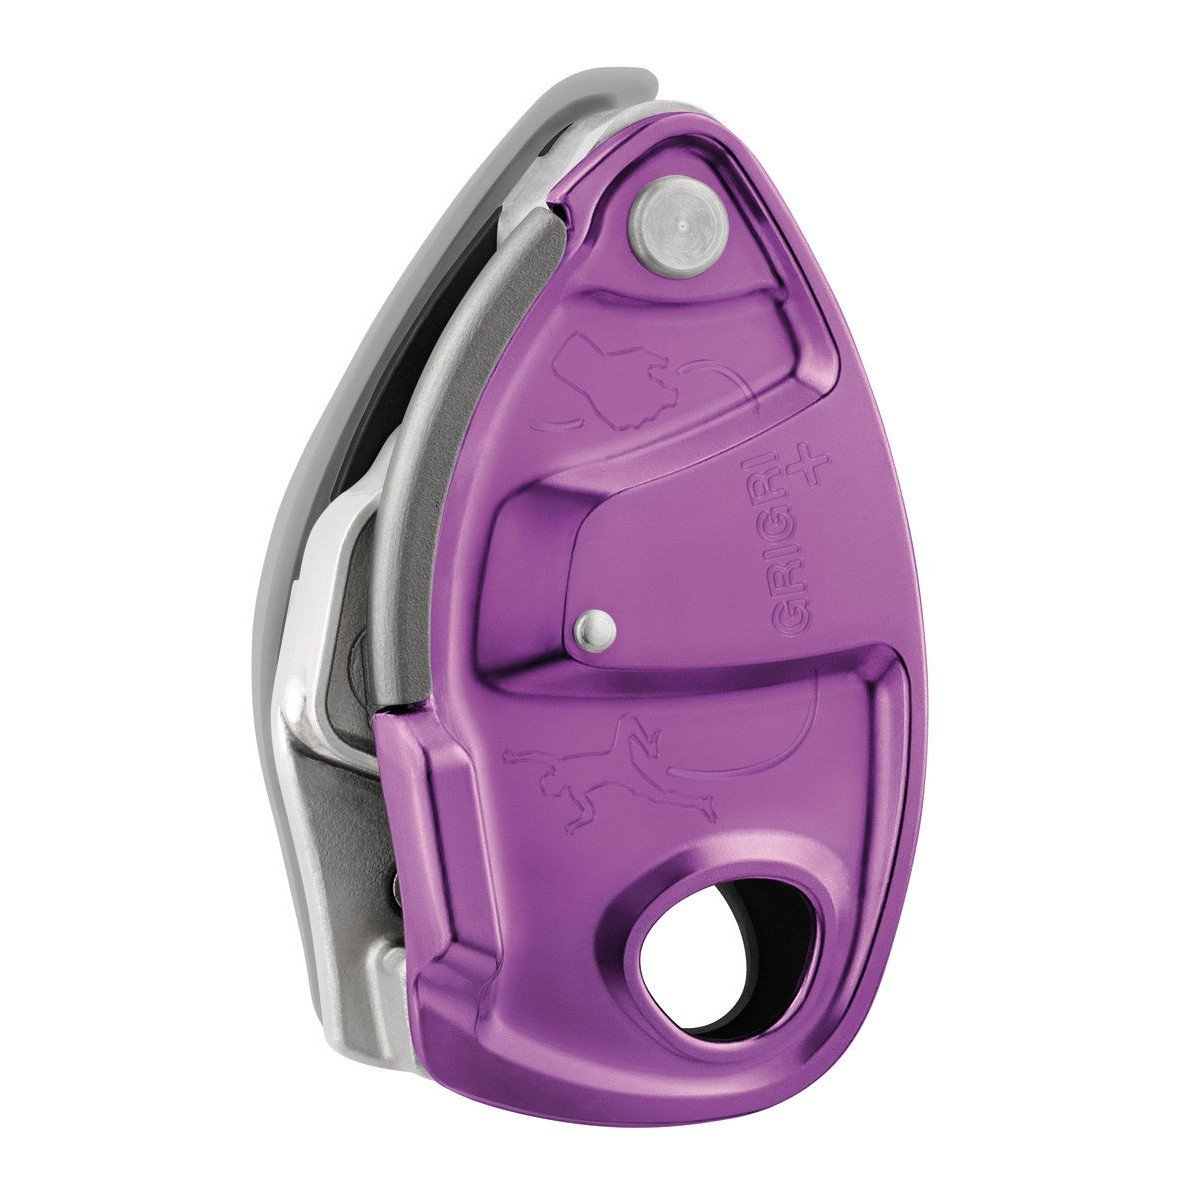 Petzl Grigri + climbing belay device, in purple colour